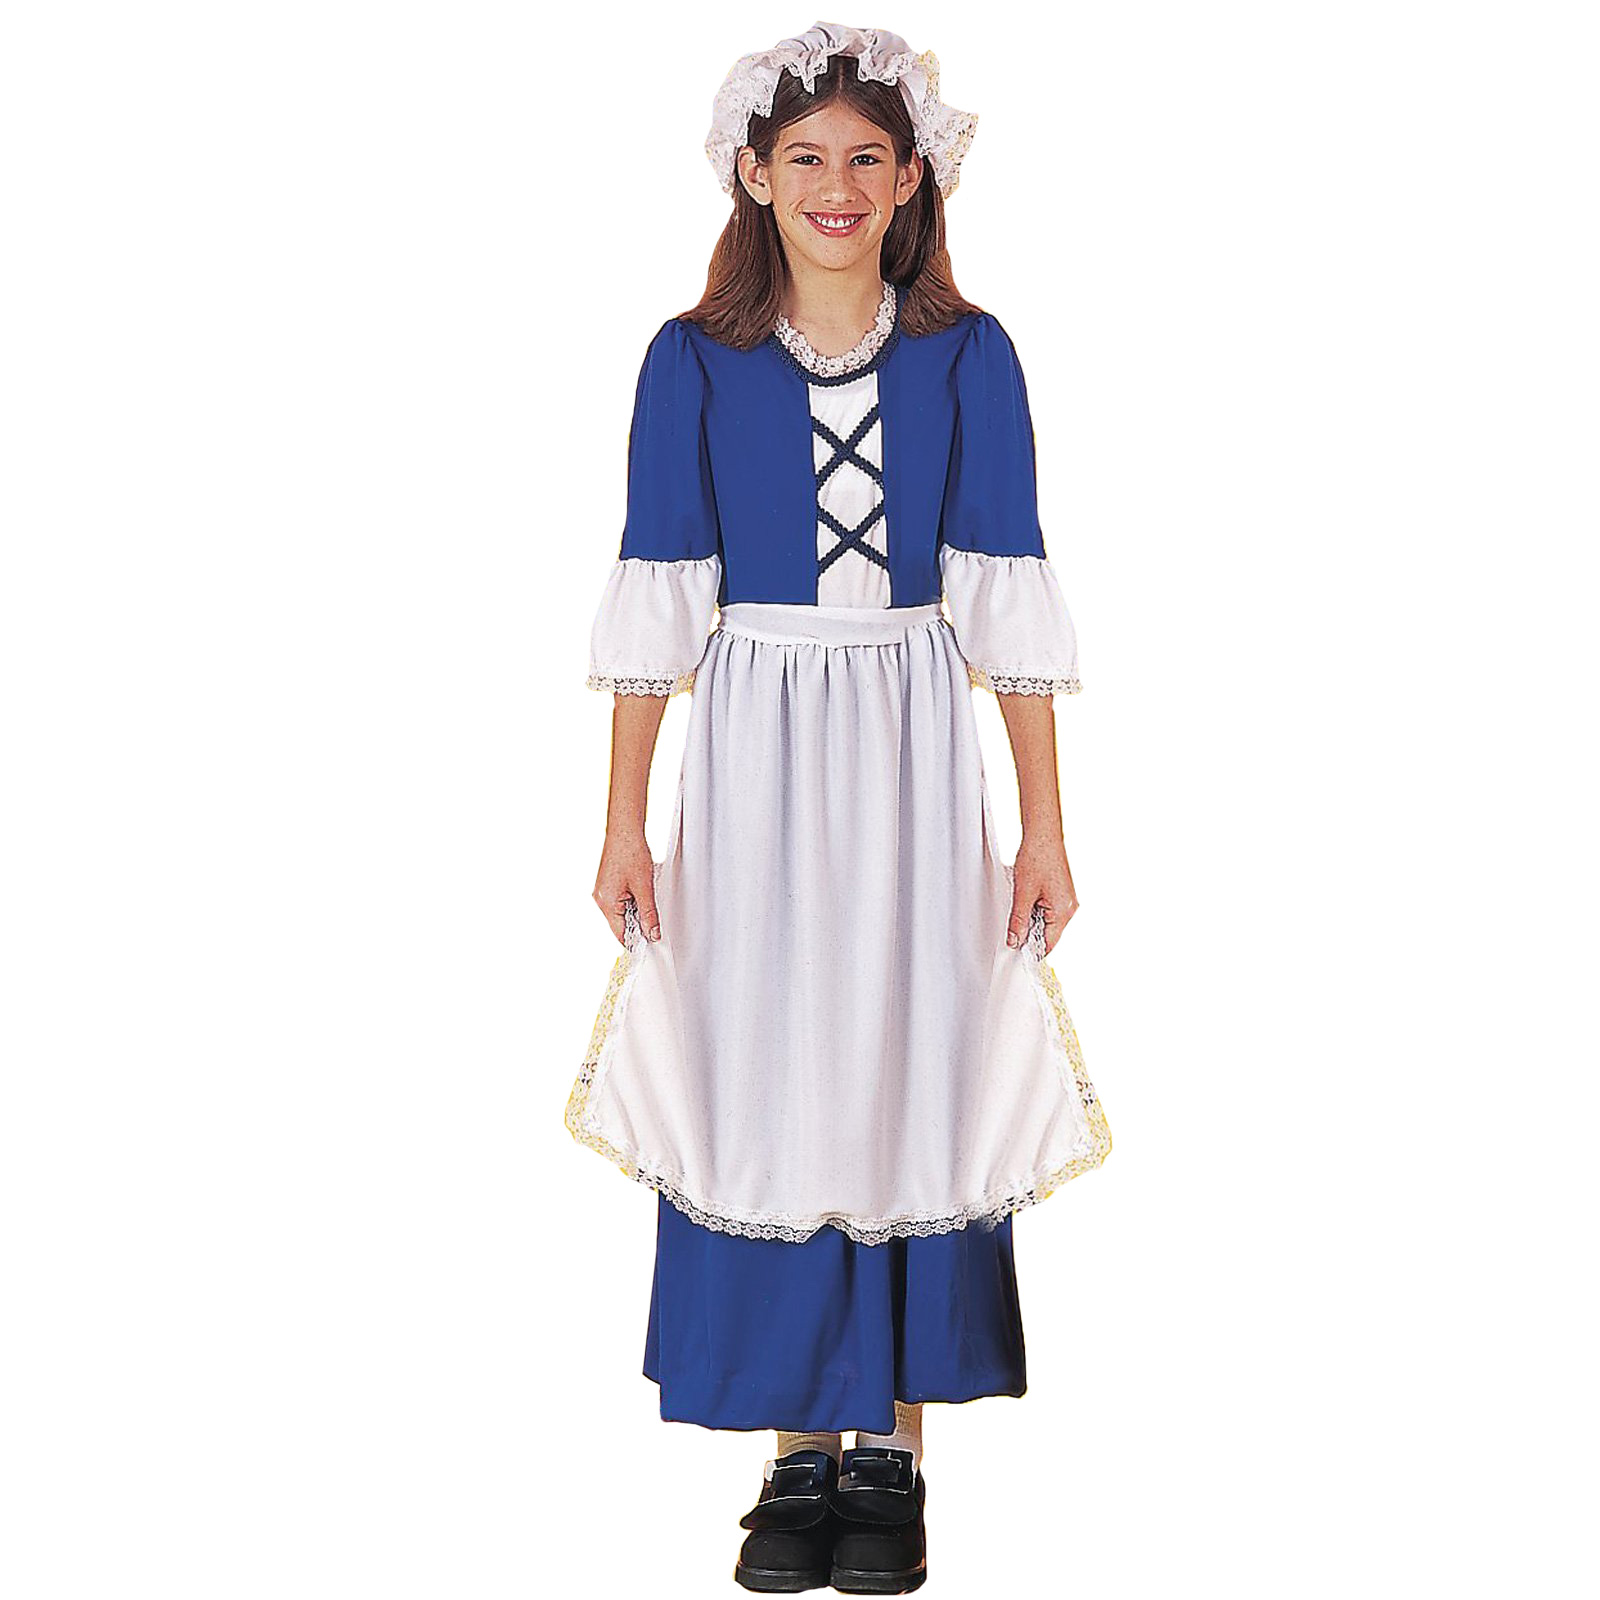 ... Picture 2 of 2  sc 1 st  eBay & Little Miss Colonial Pilgrim Blue Small 4 - 6 Girls Costume | eBay